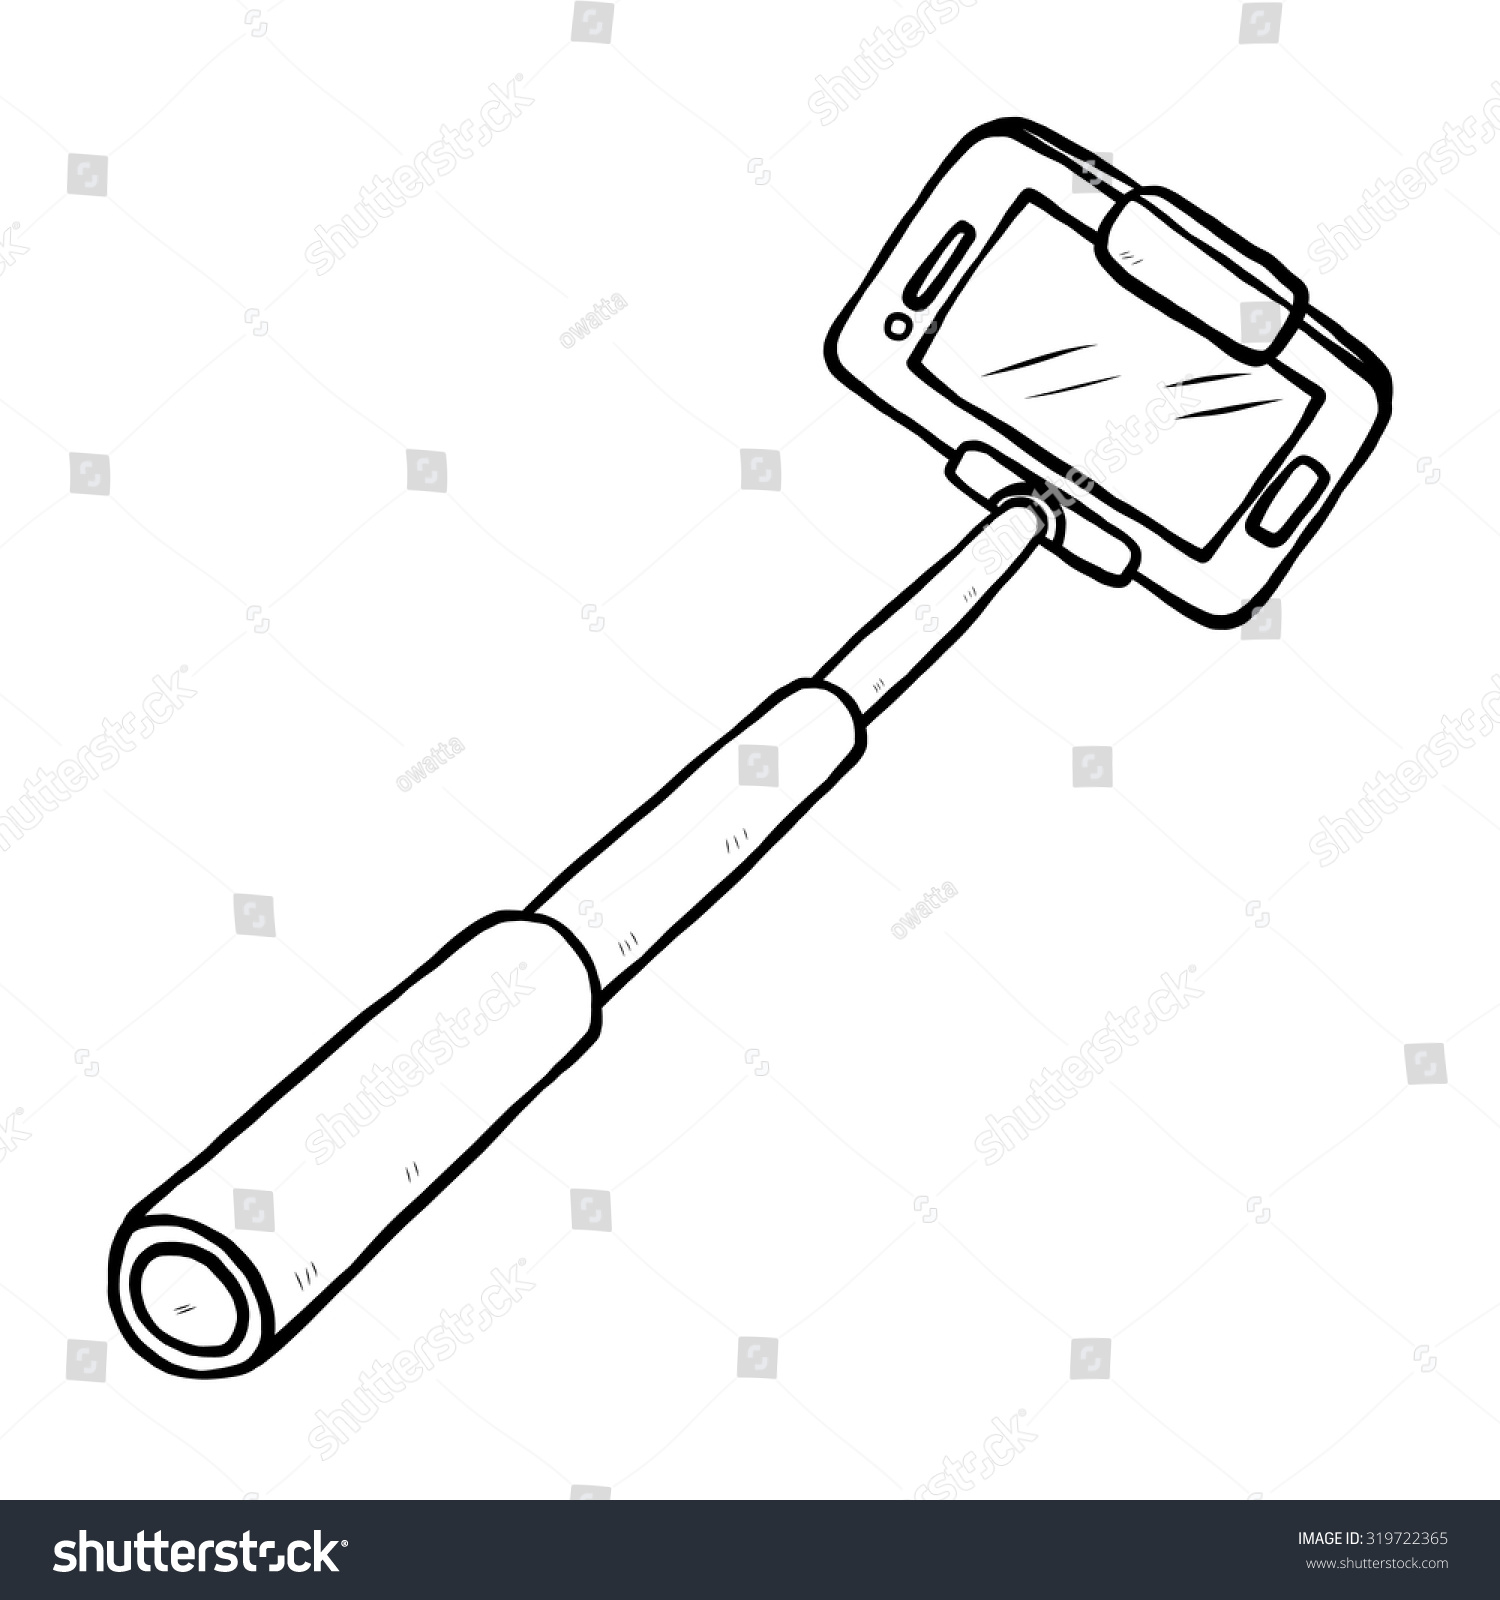 Selfie Stick And Smartphone Cartoon Vector And